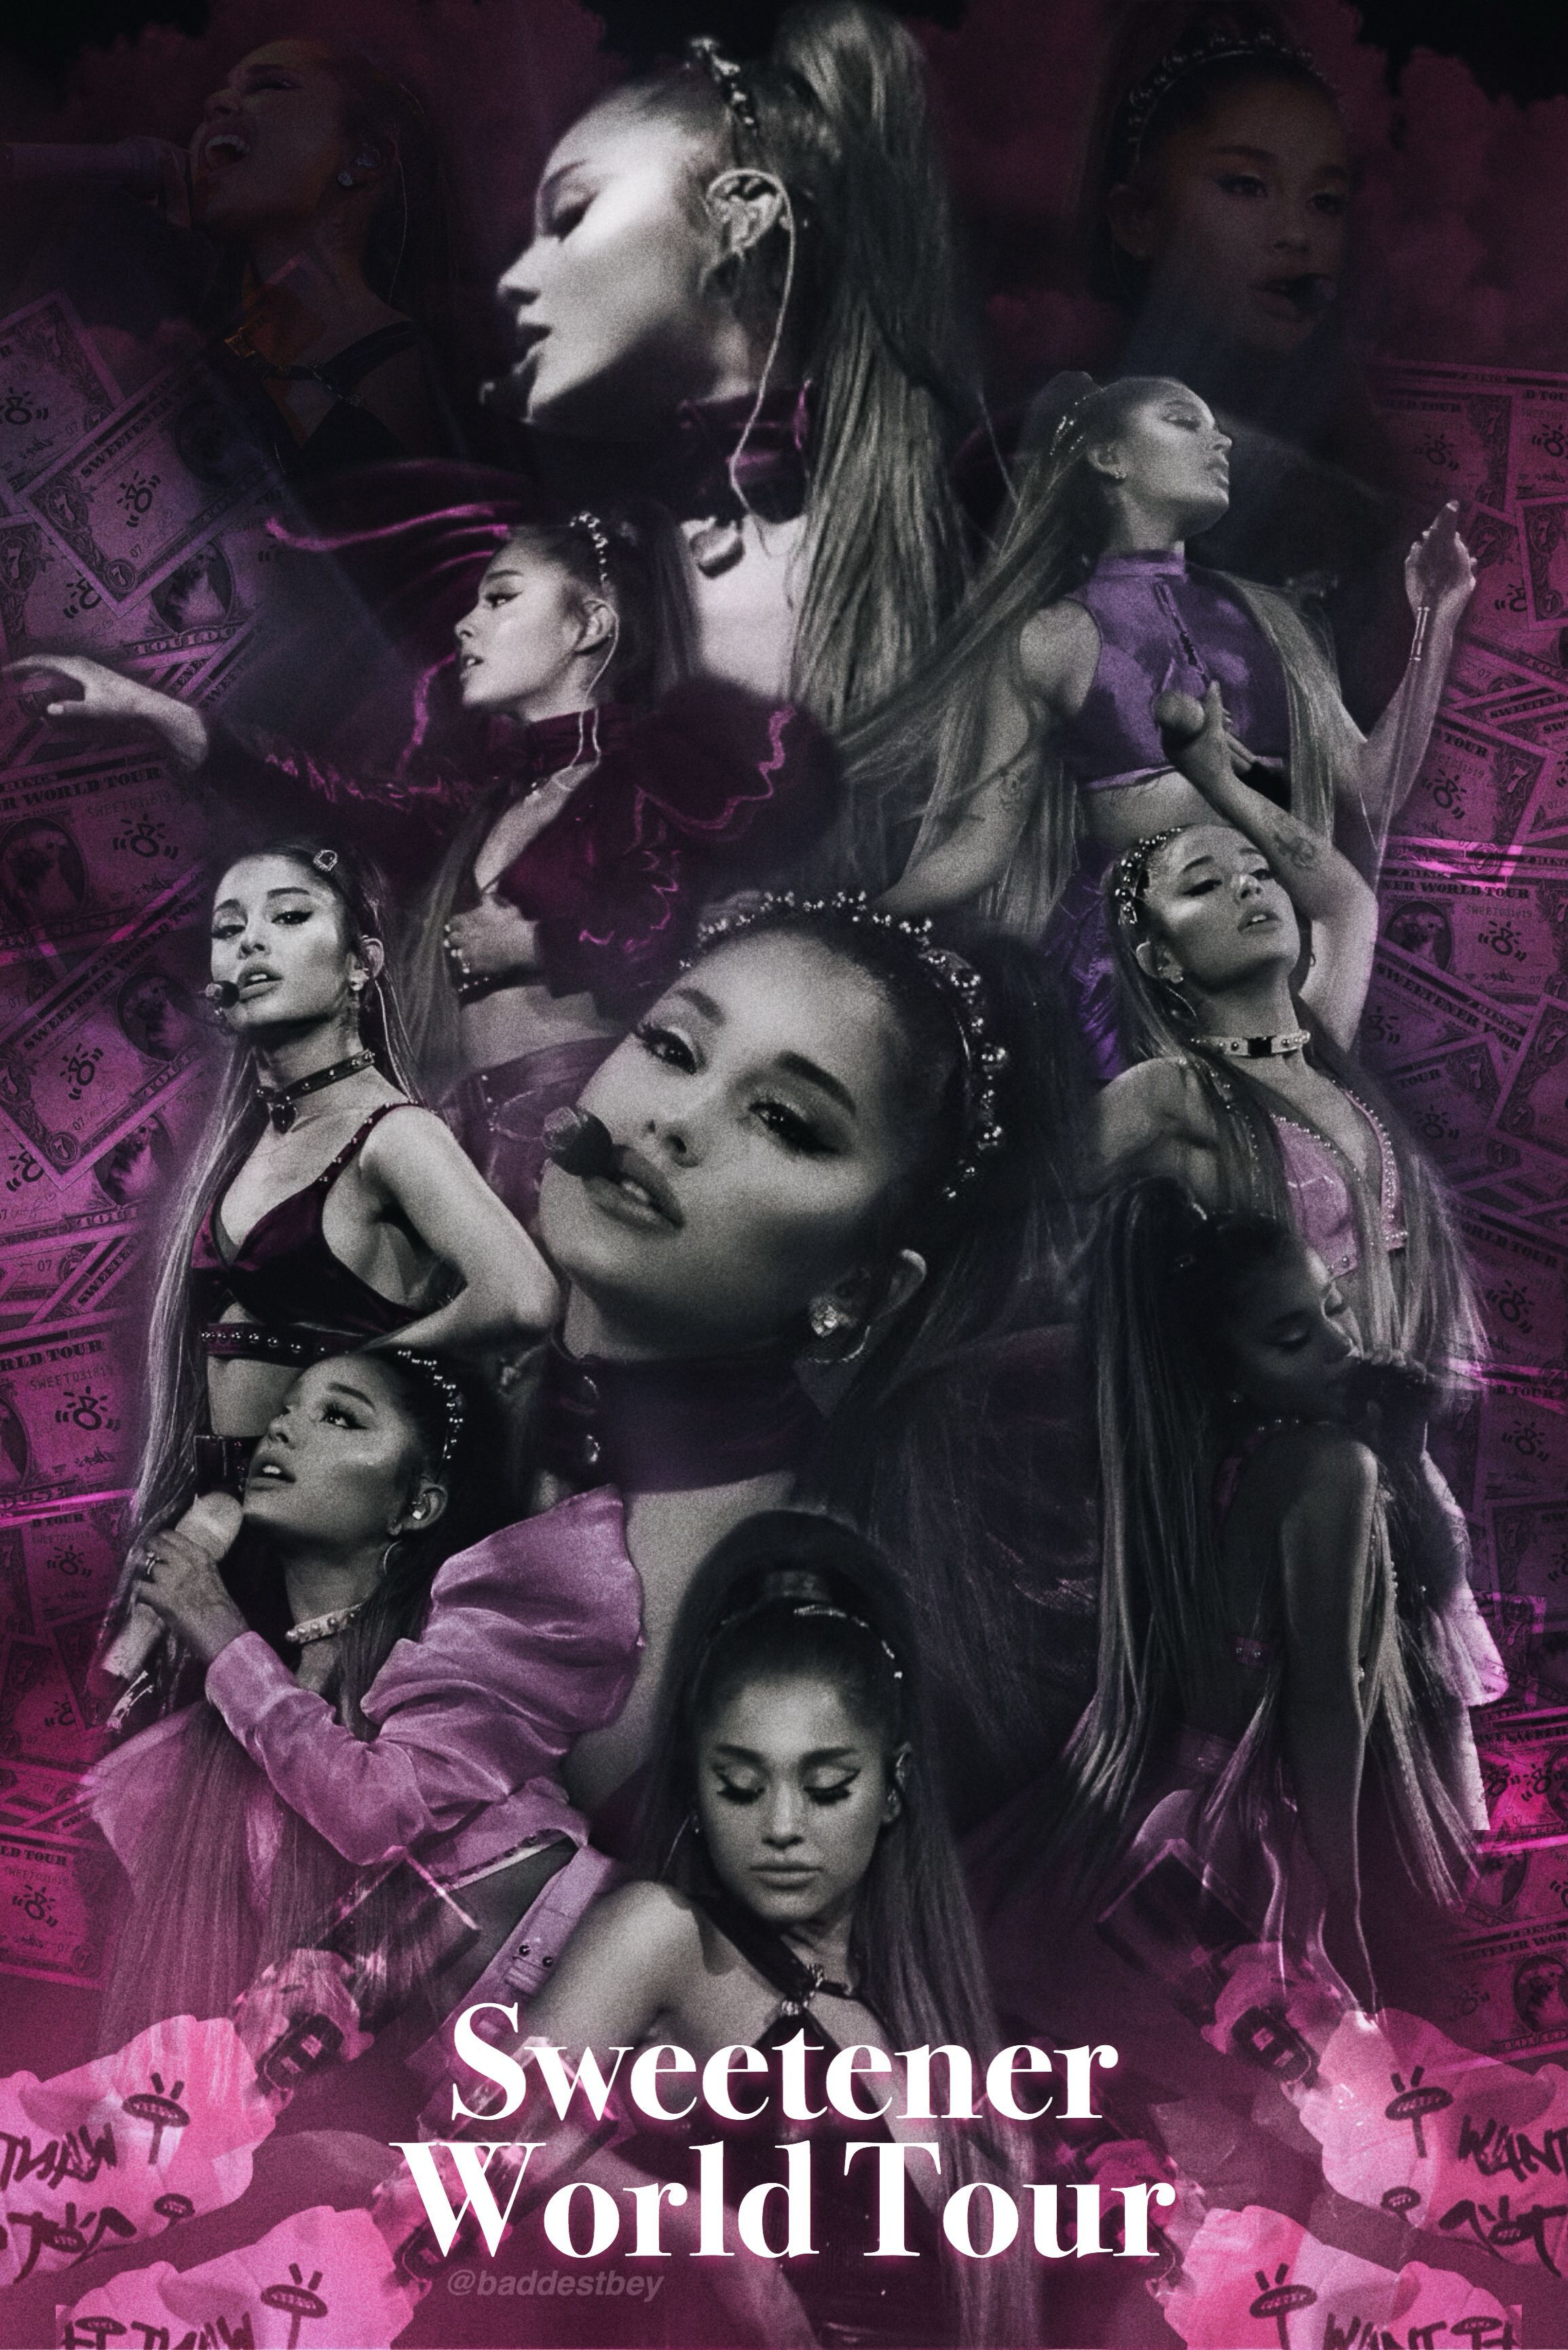 Ariana Grande Wallpaper - sweetener world tour #arianagrande -   - #ariana #arianagrande #grande #sweetener #tour #wallpaper #World